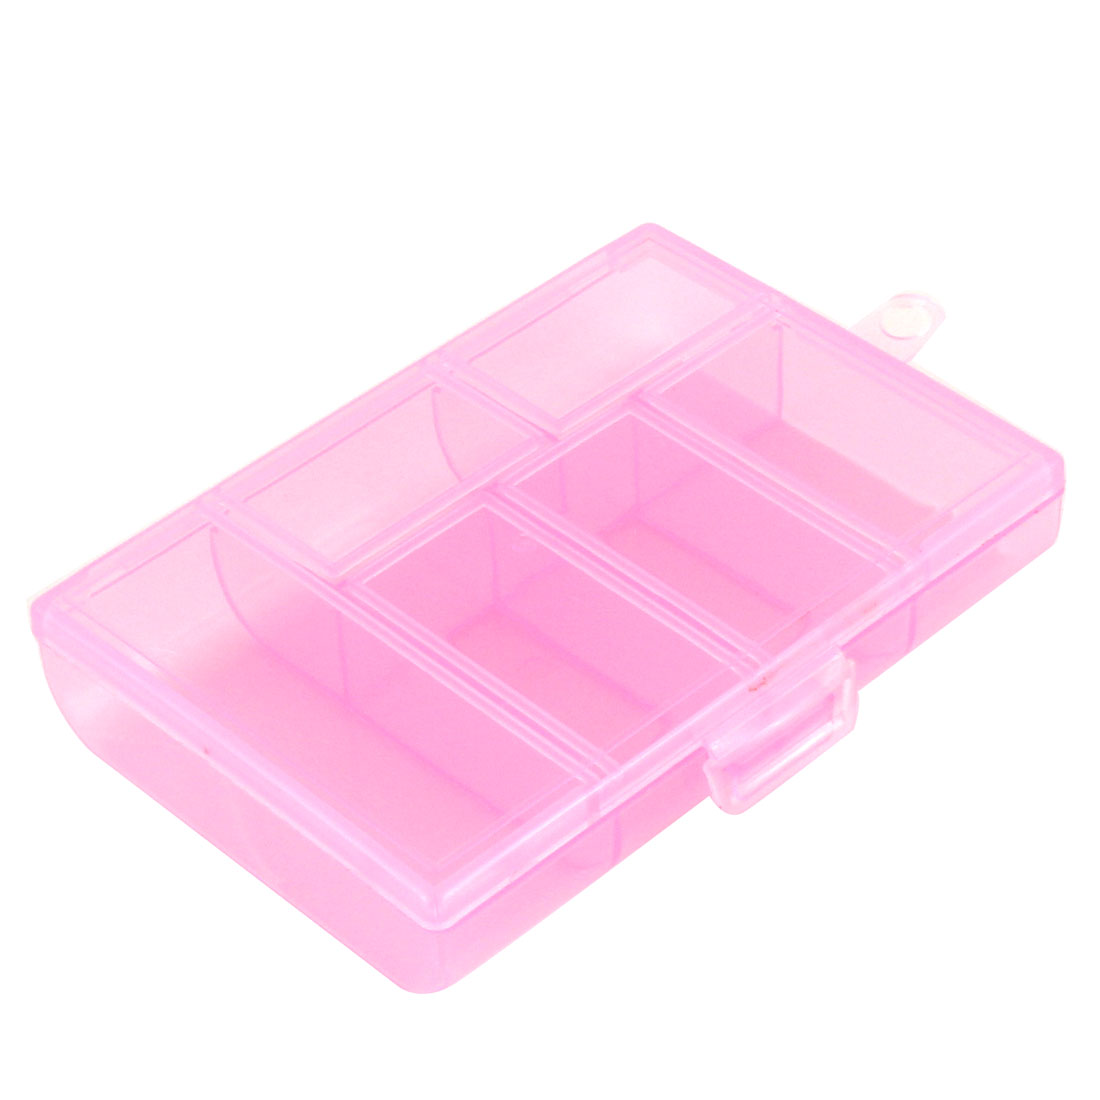 Screws Plastic 6 Compartments Storage Case Box Organizer Holder Clear Pink